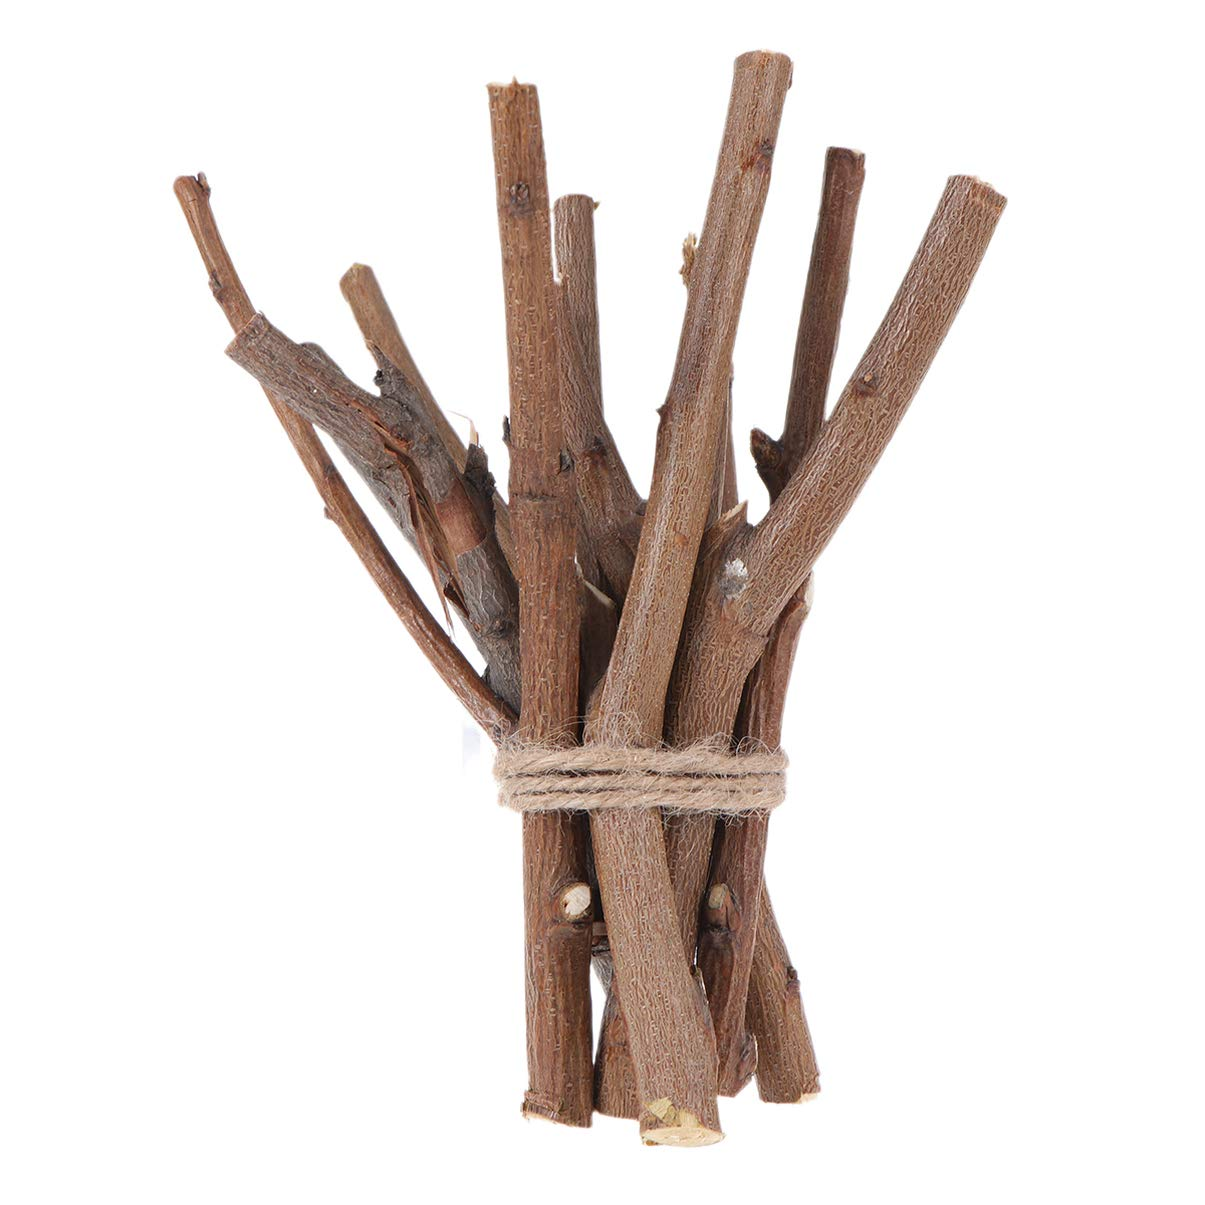 OULII Wood Sticks Log for DIY Crafts Photo Props 4inch Pack of 100